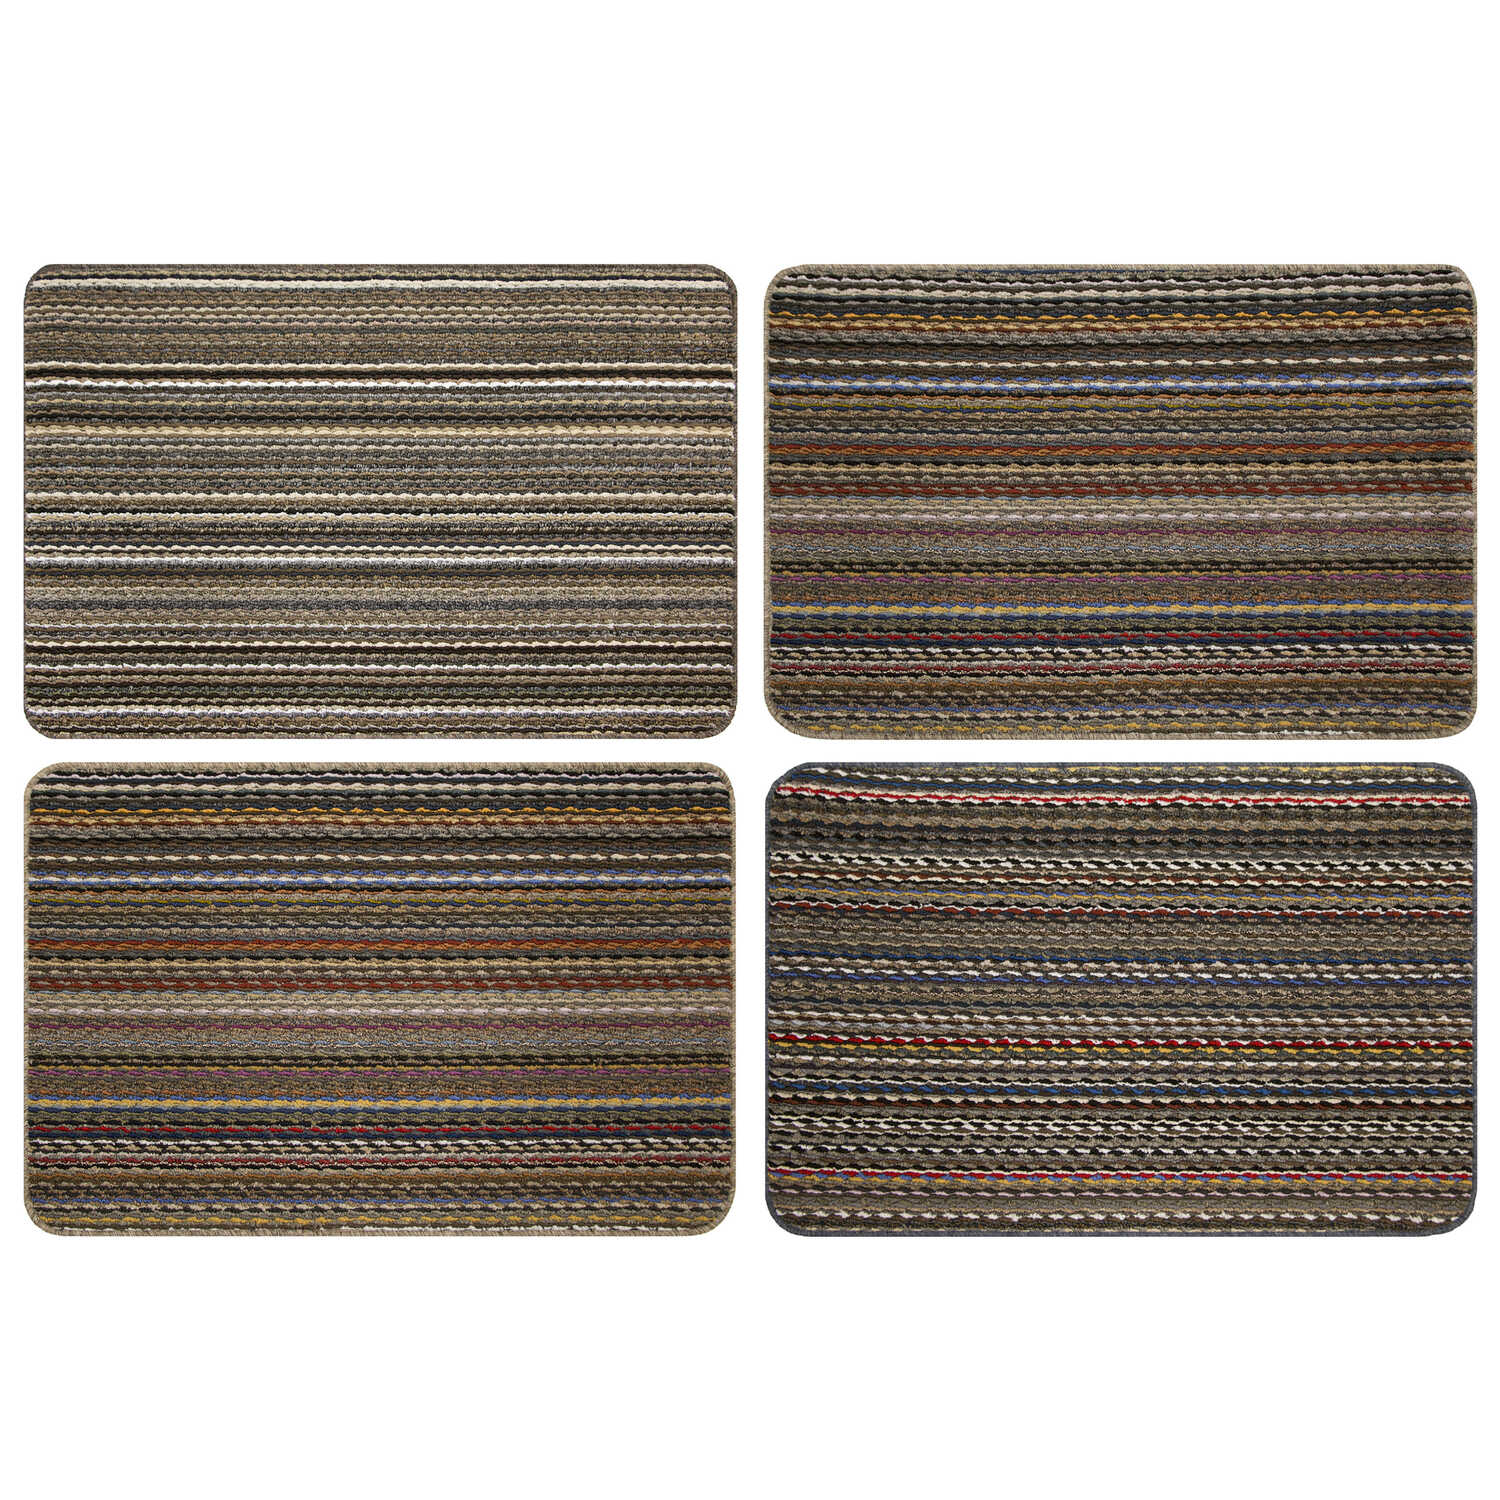 Multy Home  Montana  Multi-Colored  Polypropylene  Nonslip Floor Mat  36 in. L x 24 in. W